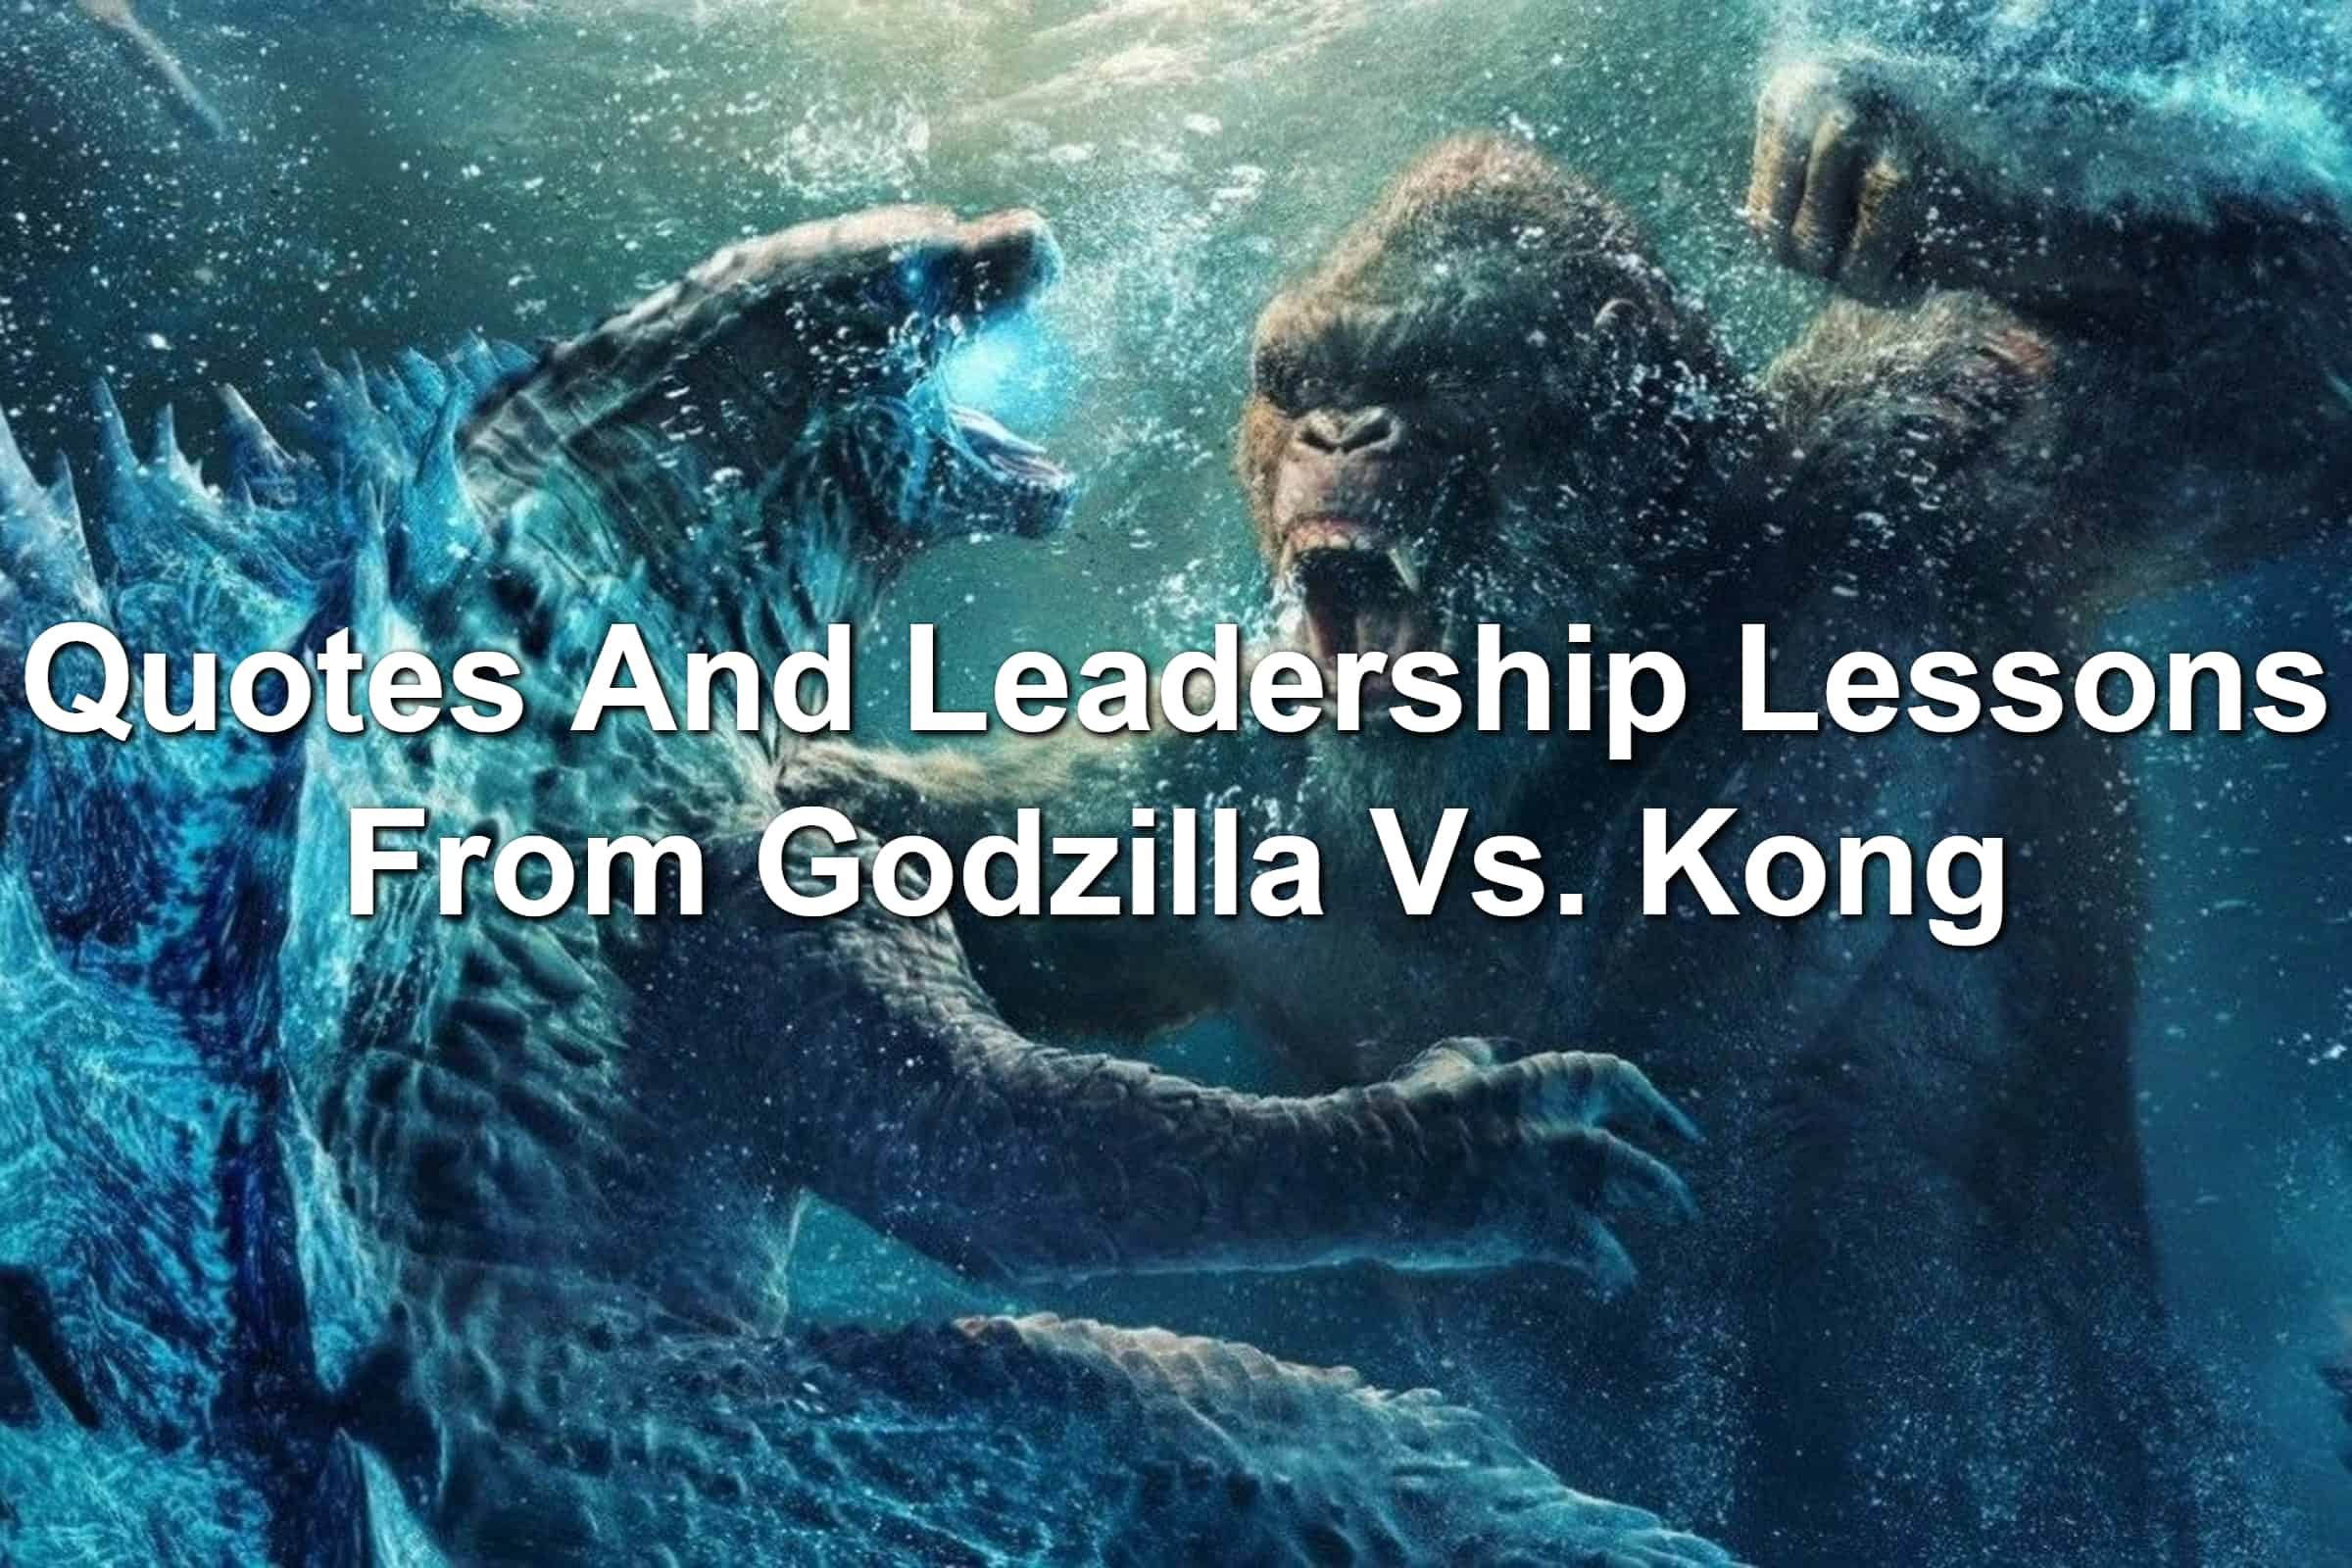 Godzilla and Kong fighting in the ocean